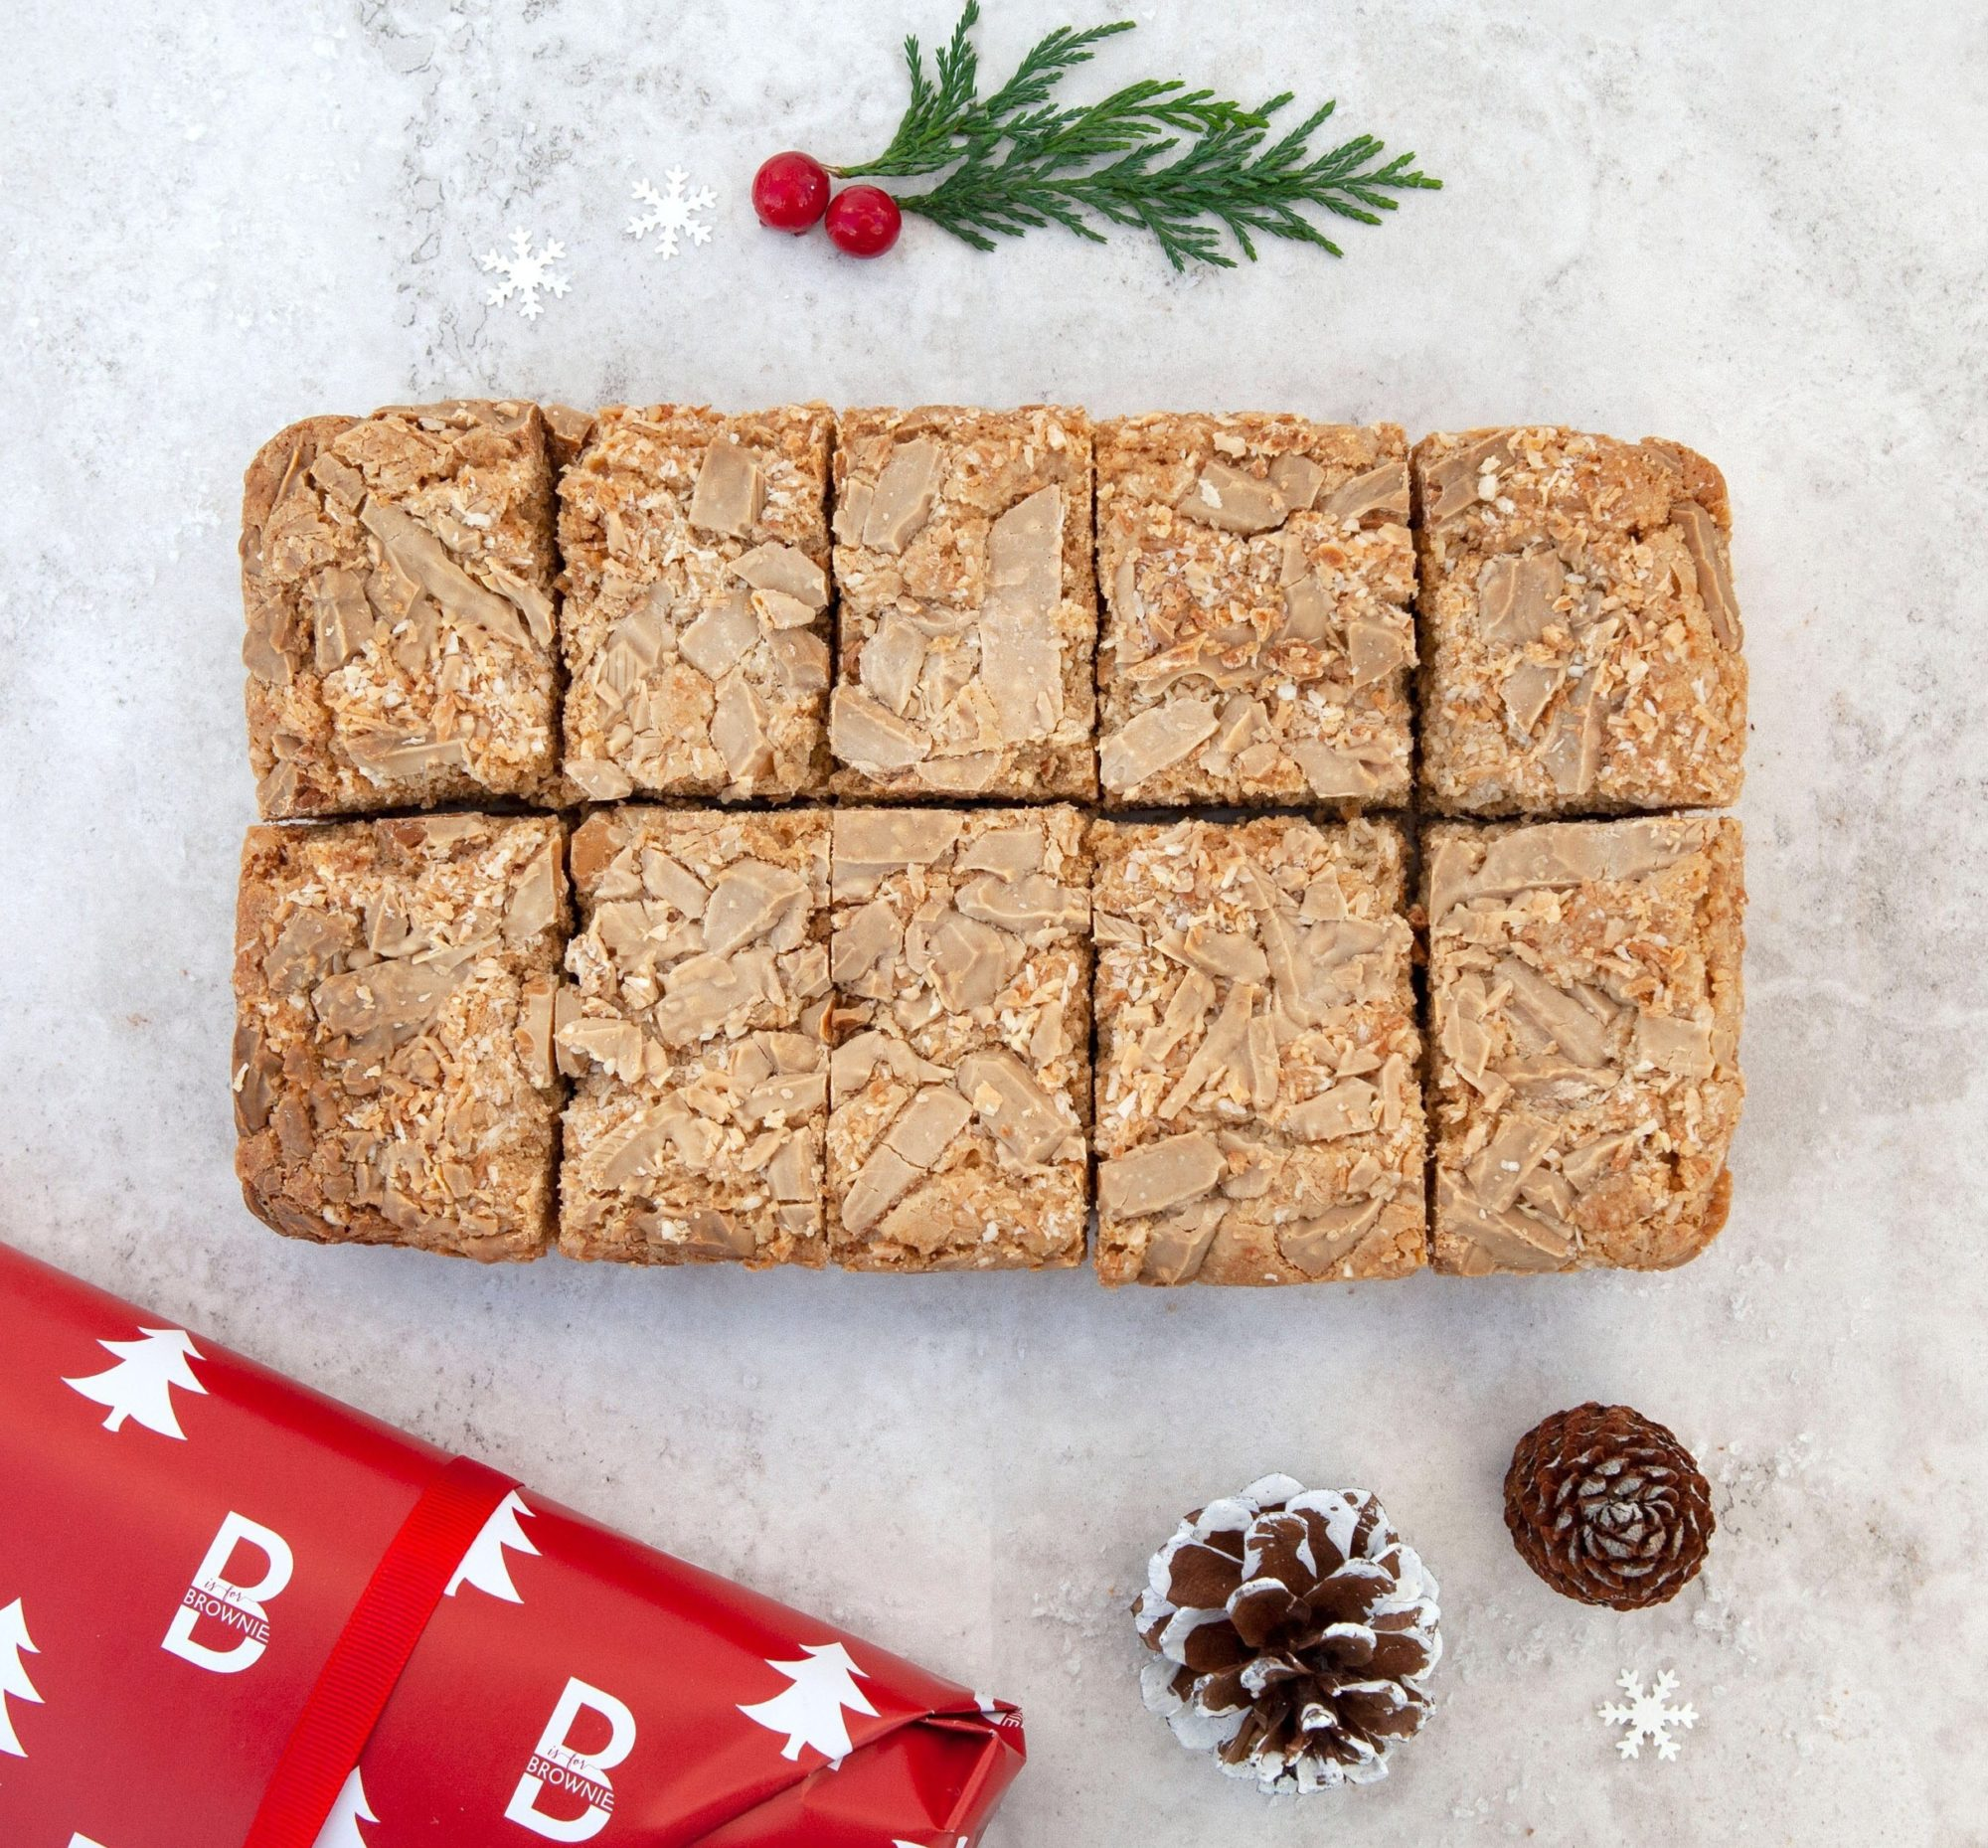 Totally Toasted Coconut Blondie – serves 10